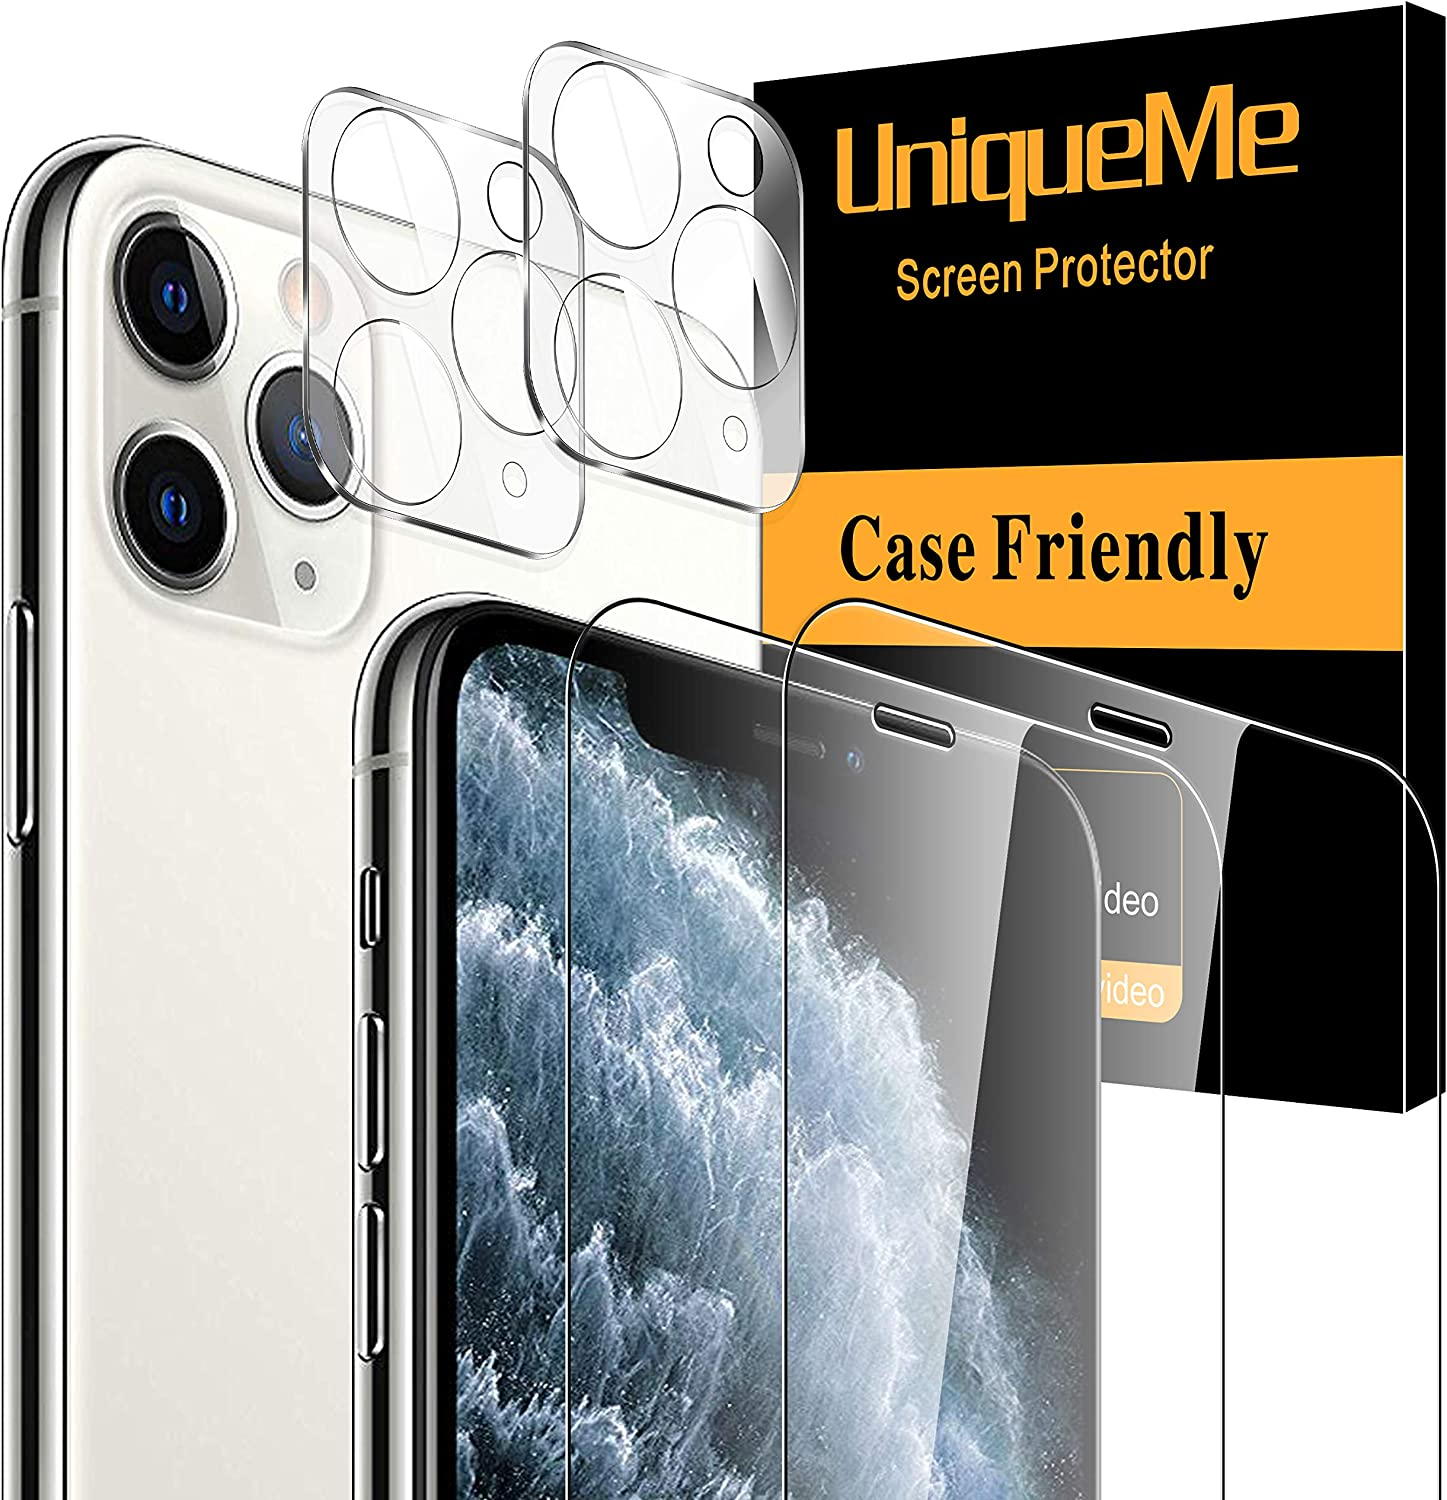 [4 Pack] UniqueMe Screen Protector for iPhone 11 Pro Max (6.5 inch), 2 Pack Tempered Glass Screen Protector and 2 Pack Camera Lens Protector 9H Hardness Clear [Bubble Free]